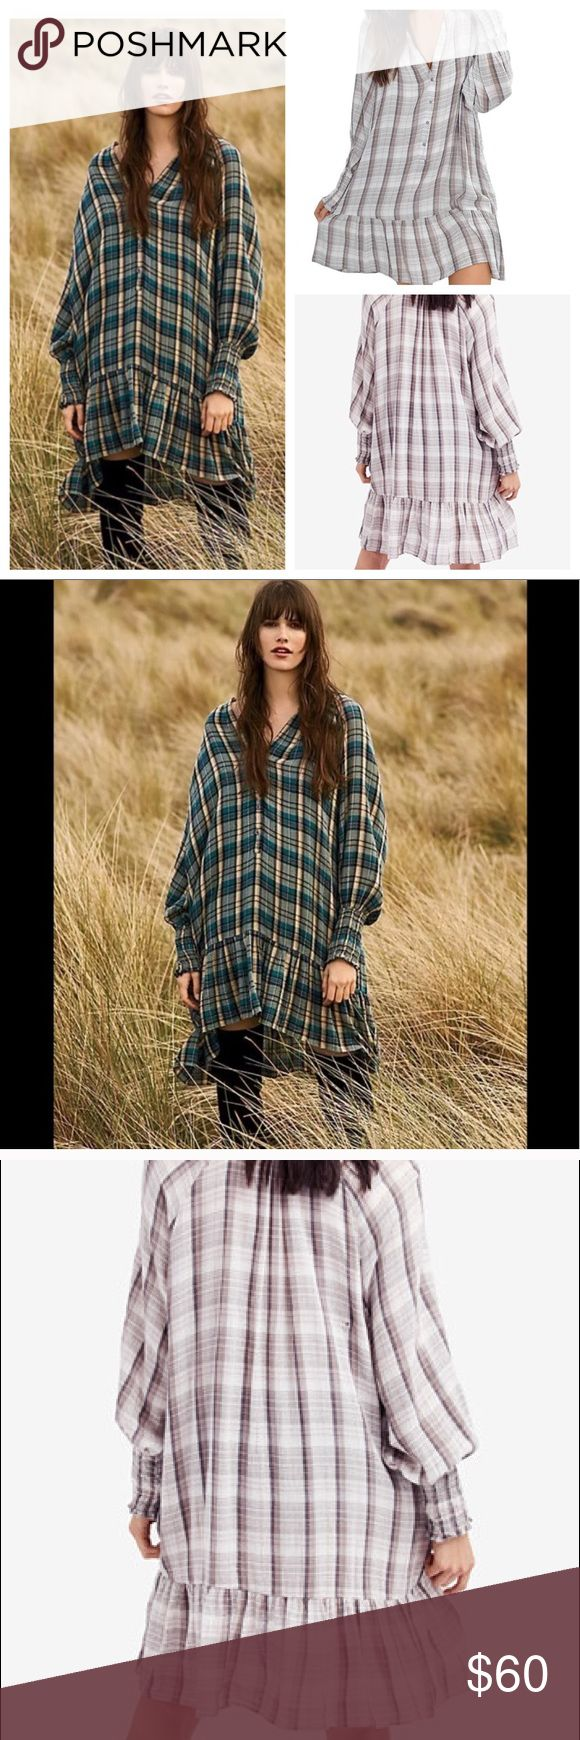 Free People Red Moon Plaid Mini Dress Price tag is attached. Ribbon size tag is not (it's held on with the plastic barb for the price tag). Lovely neutral combo with tones of oatmeal grey and tan. $70 on Free People (this color sold out). Cheaper from my closet! 😘 Free People Dresses Mini